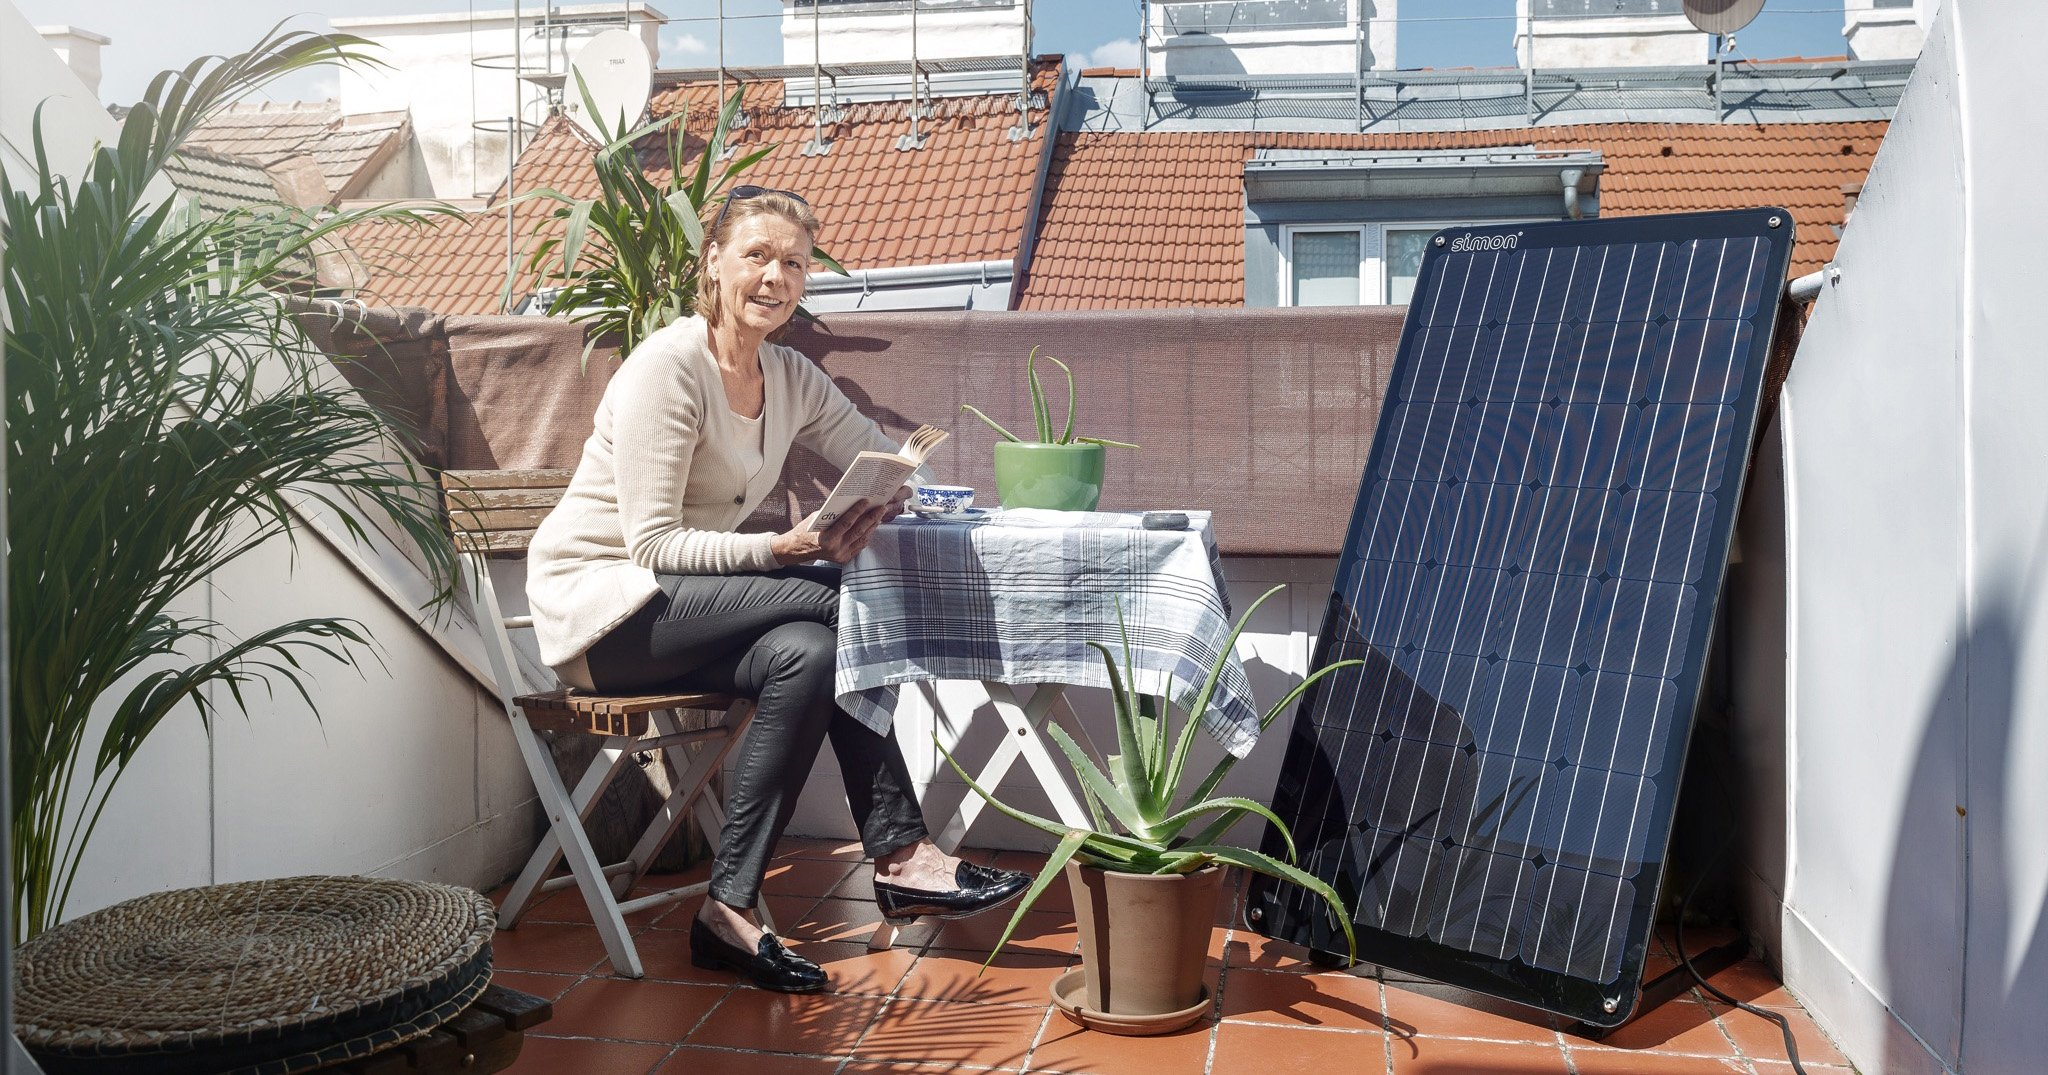 greenpeace energy erreicht durchbruch f r balkon solarkraftwerke. Black Bedroom Furniture Sets. Home Design Ideas